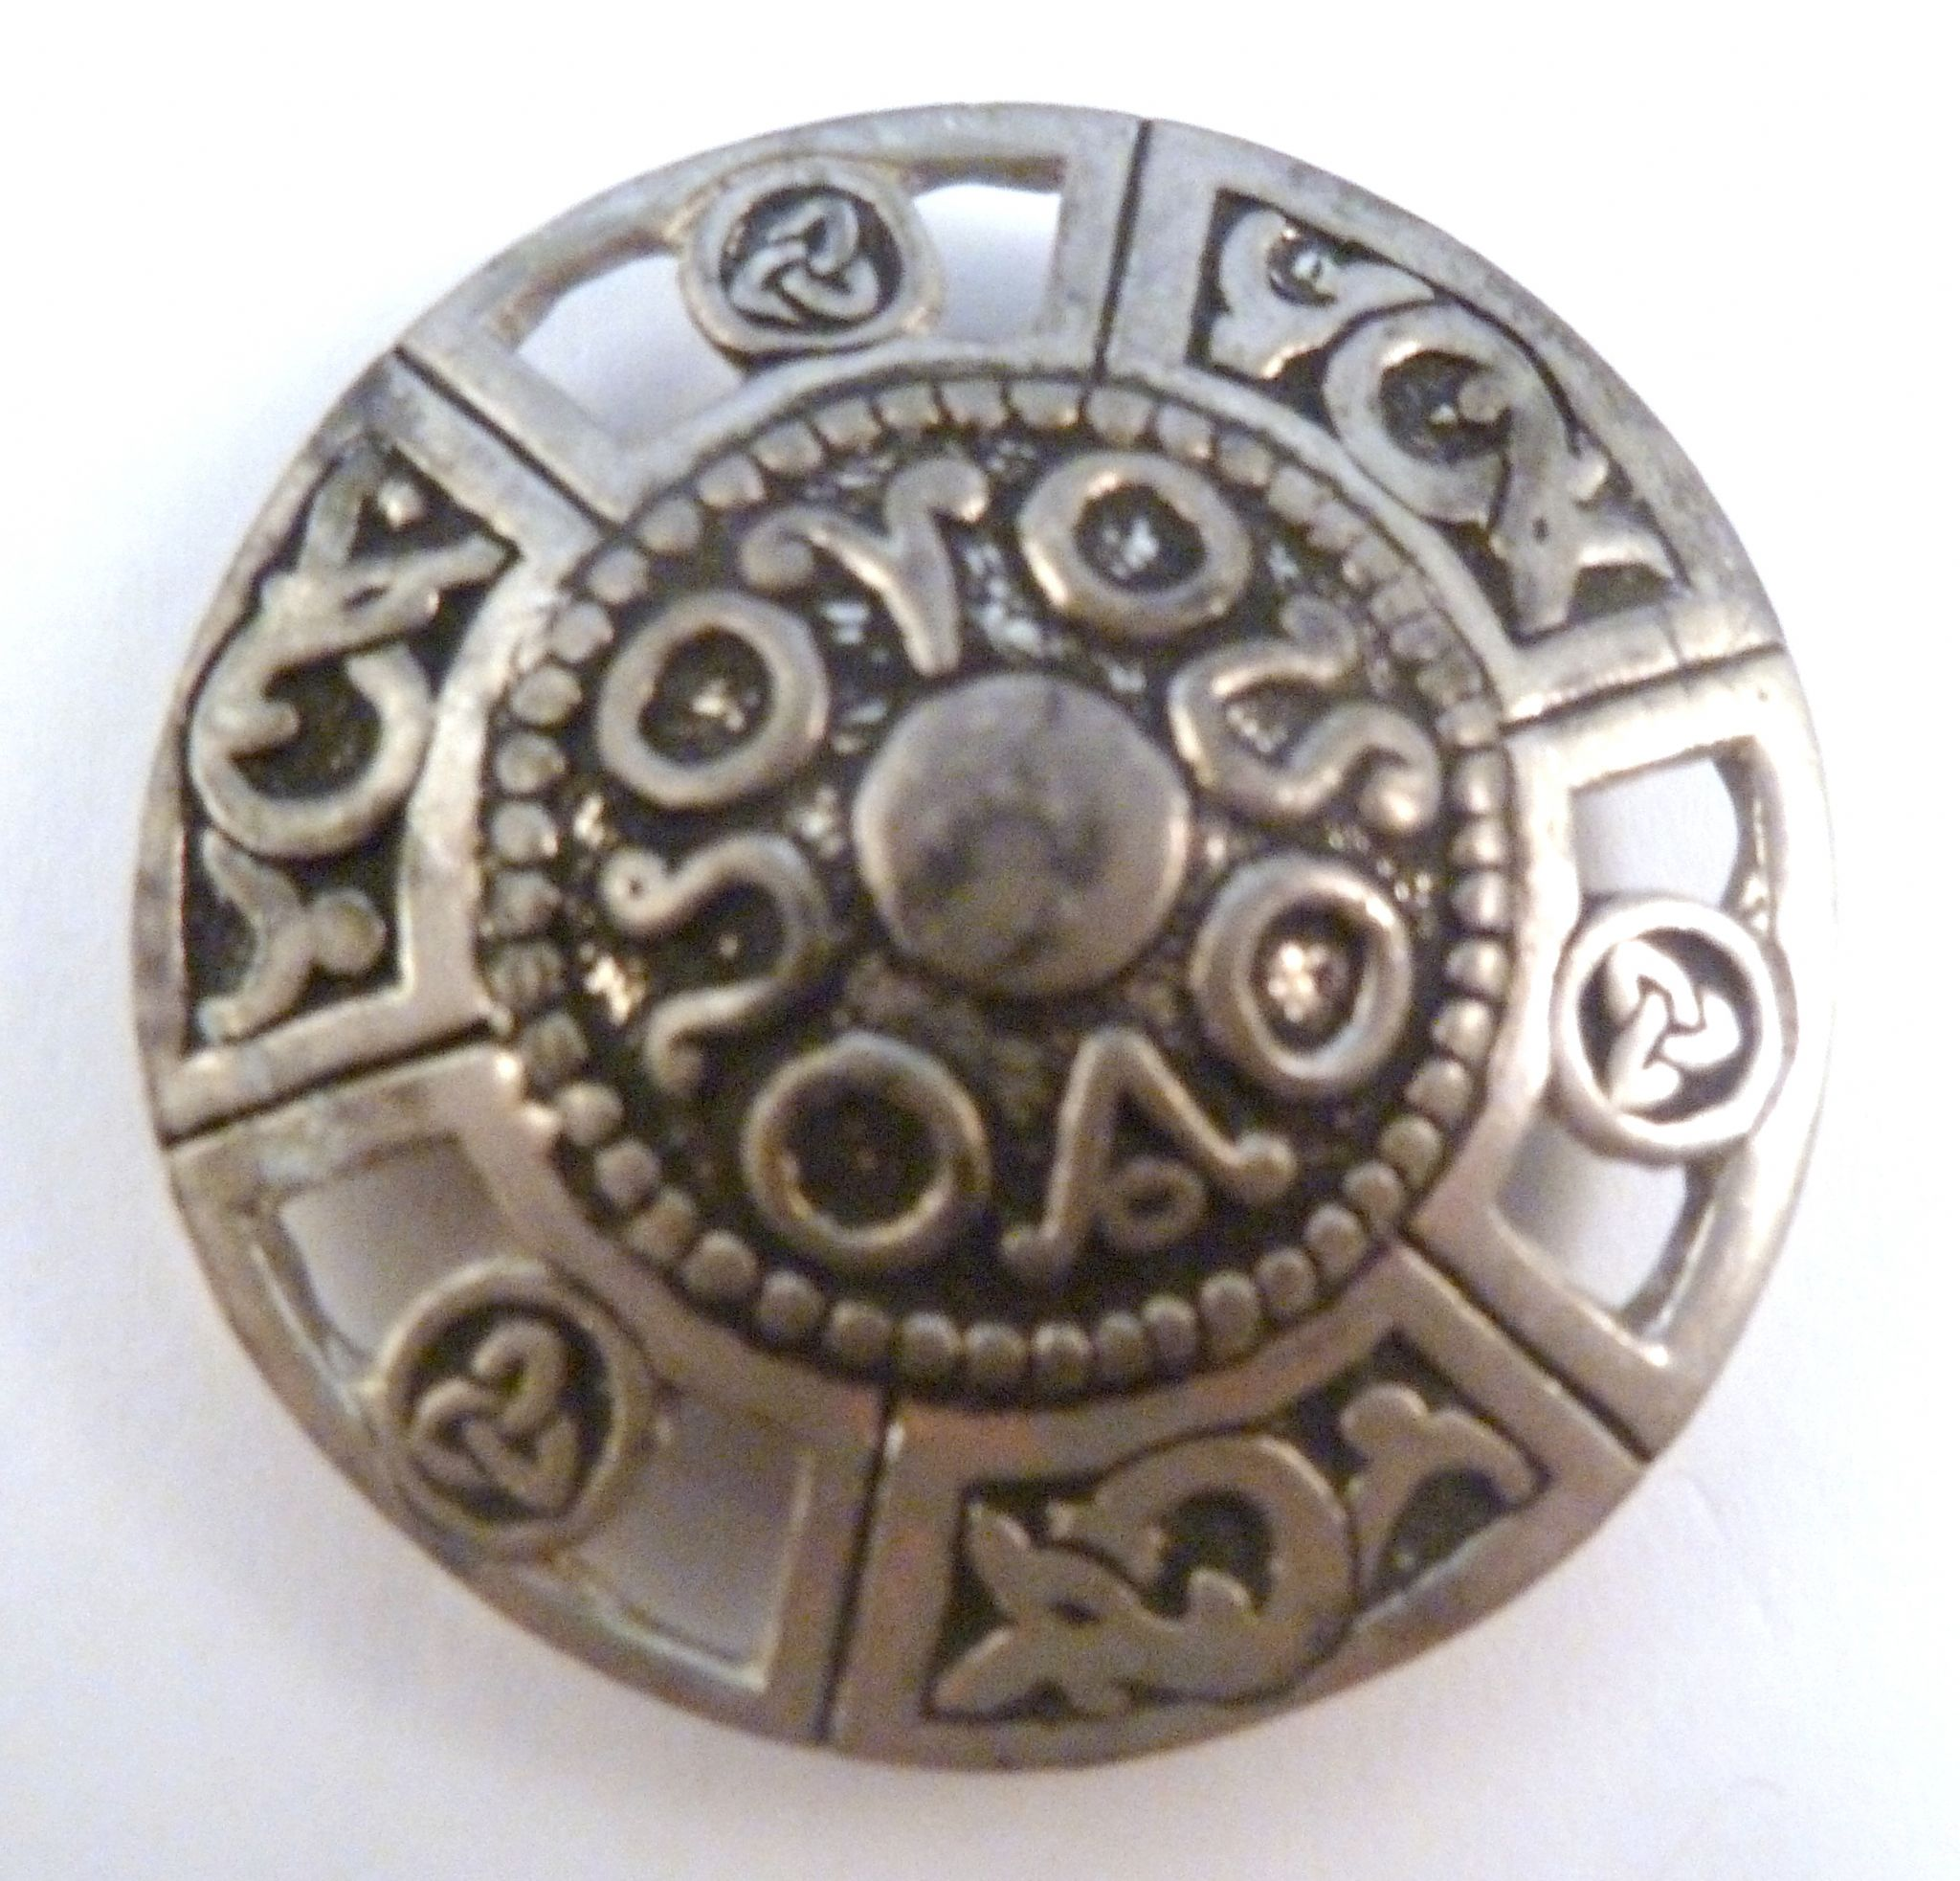 styles tt inspiring design mainly brooch celtic viking memorabilia manx concept and for brooches pic designs gifts